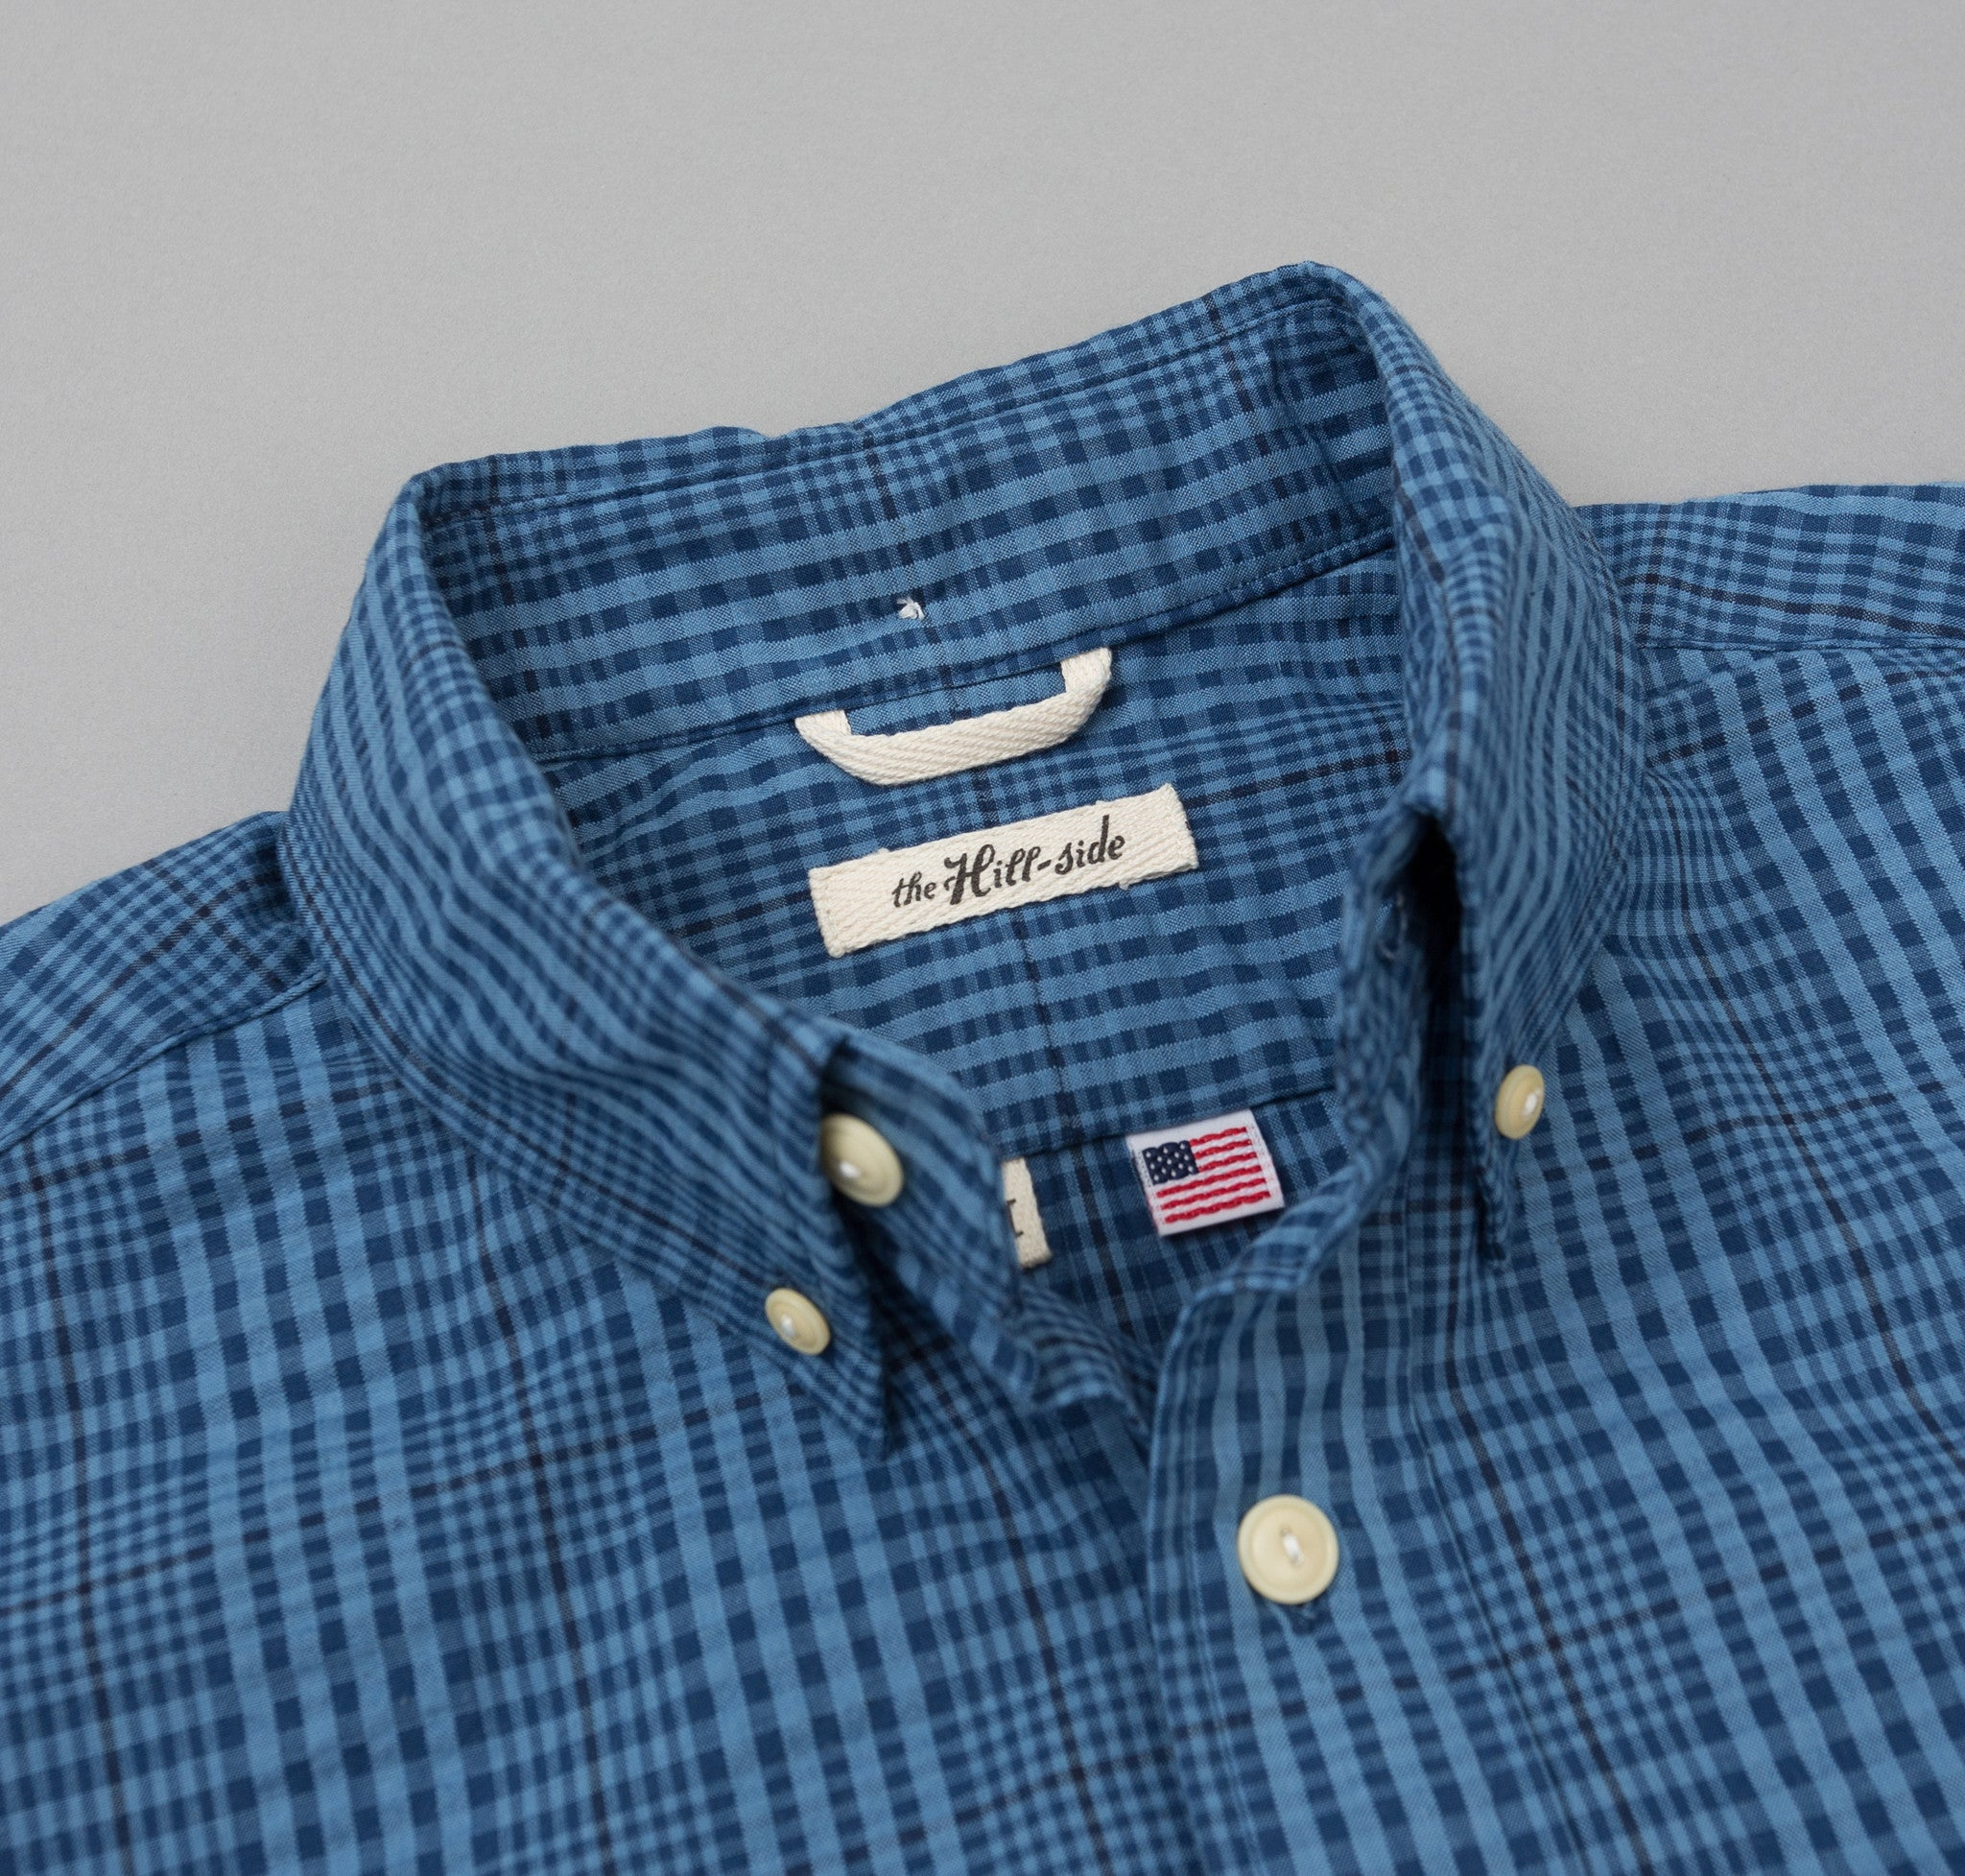 The Hill-Side Seersucker Check Long Sleeve Standard Shirt, Indigo